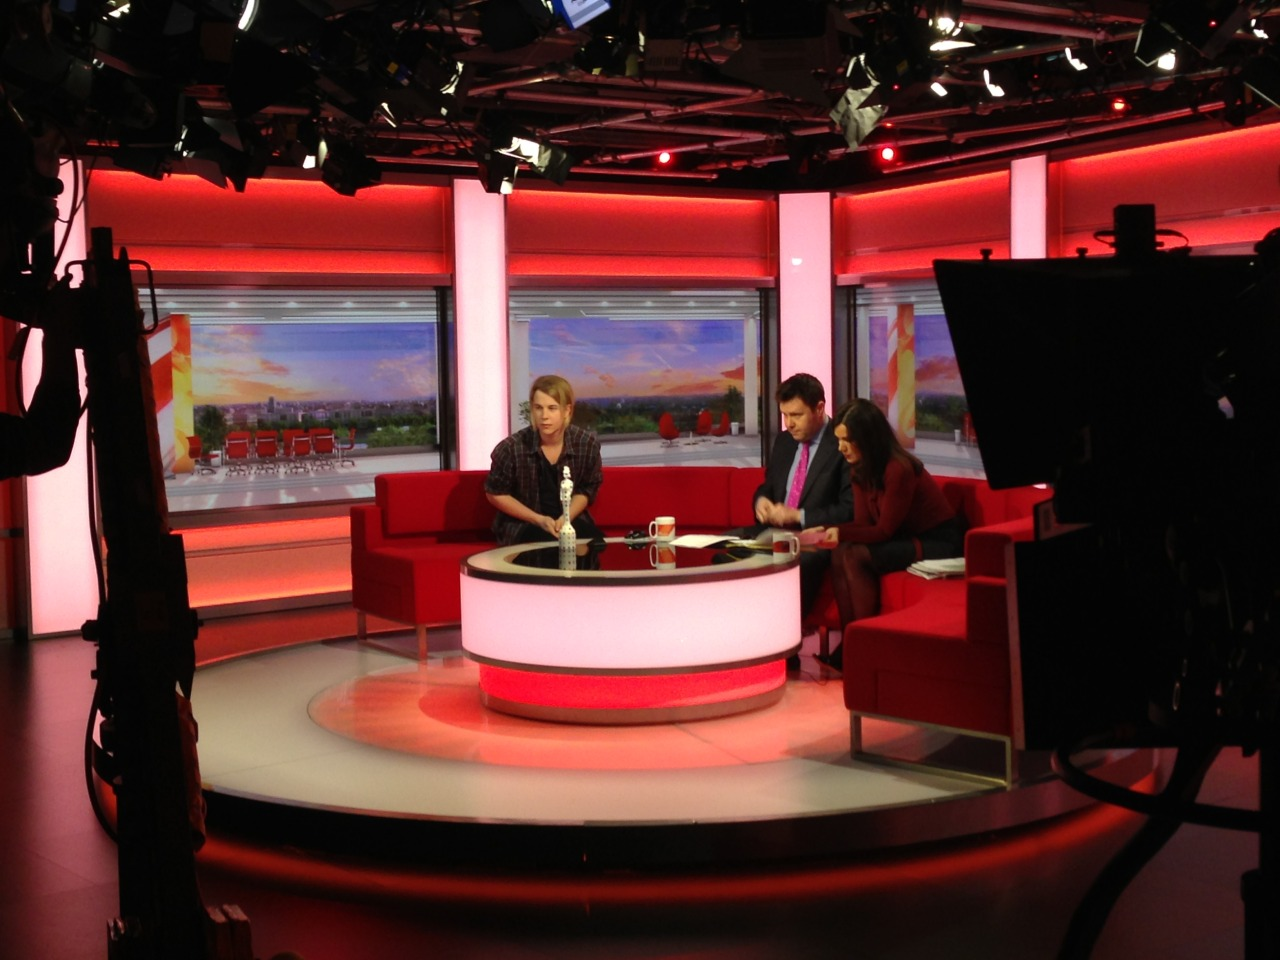 Tom was on BBC Breakfast this morning chatting about Wednesday's BRITS Awards! Clip available soon.